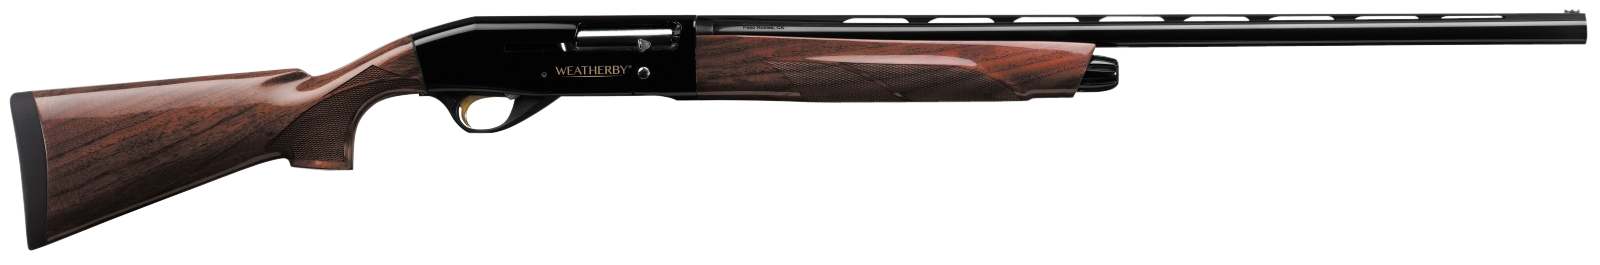 Weatherby EDX1228PGG Element Deluxe Semi-Automatic 12 ga 28